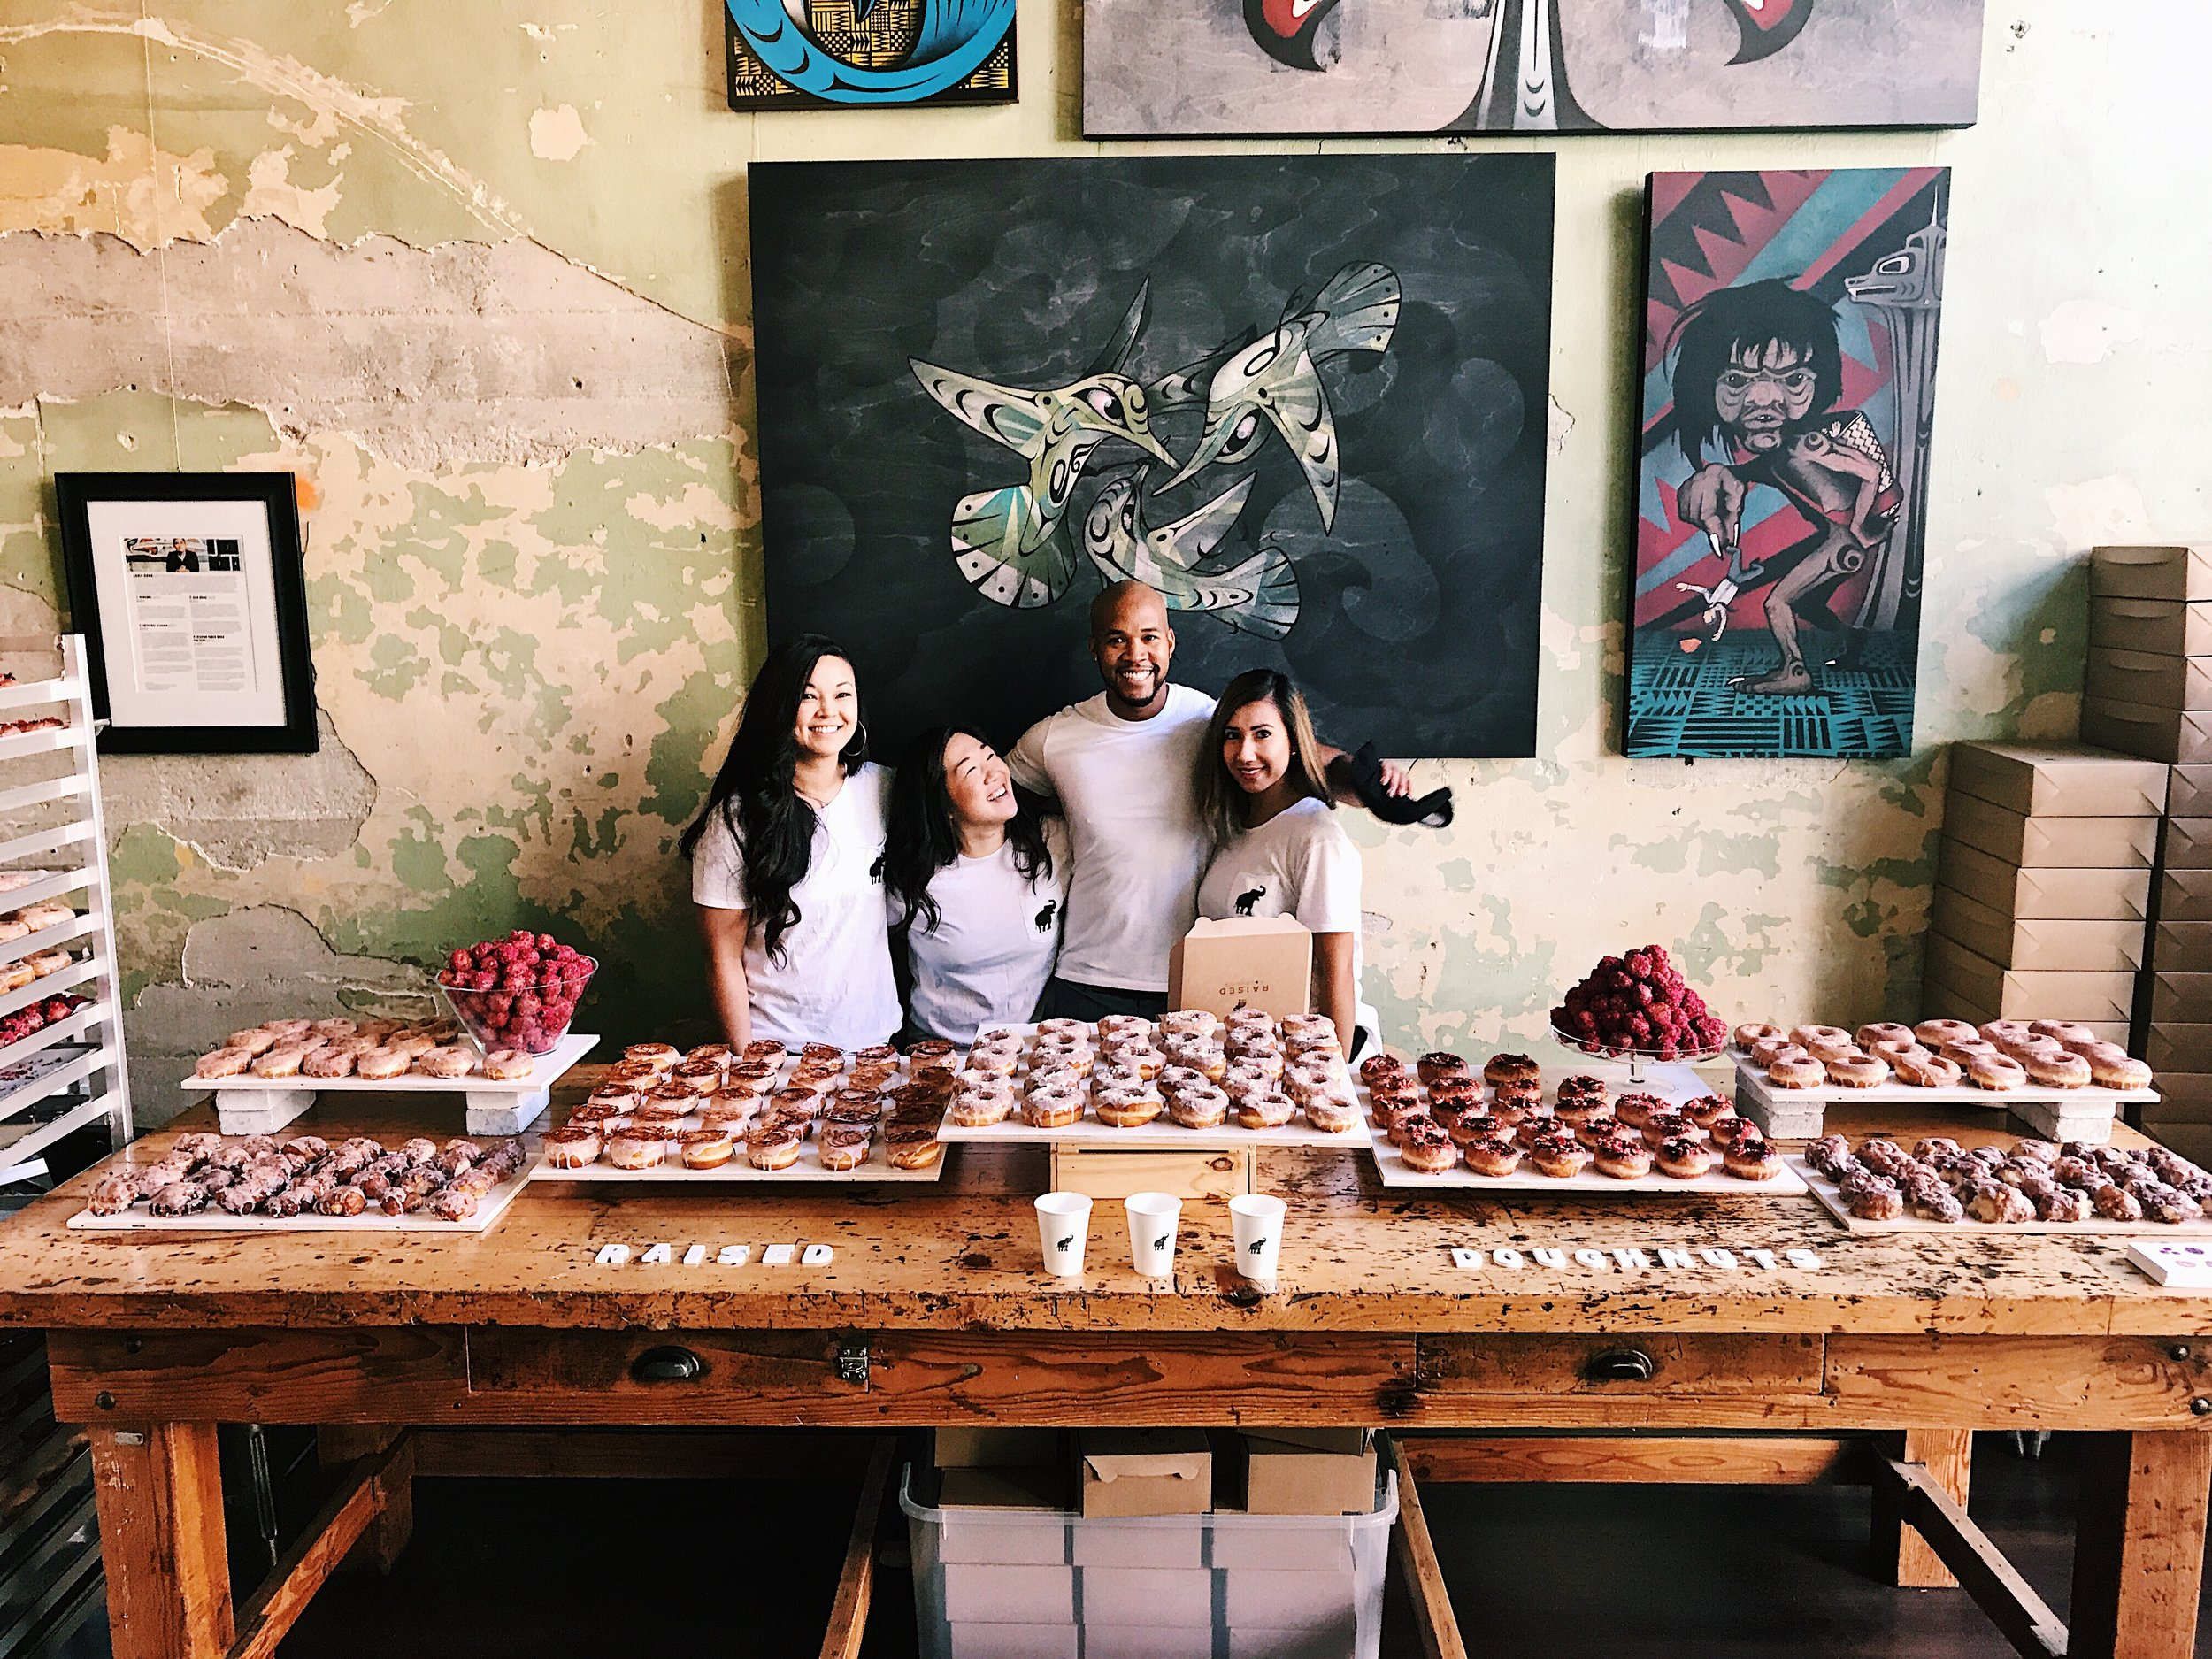 RAISED DOUGHNUT POP UP X2  5.21.17 Another great success! We tripled the amount of doughnuts this time around and still sold out within 2 hours! Thanks to everyone who made it out and supporting!